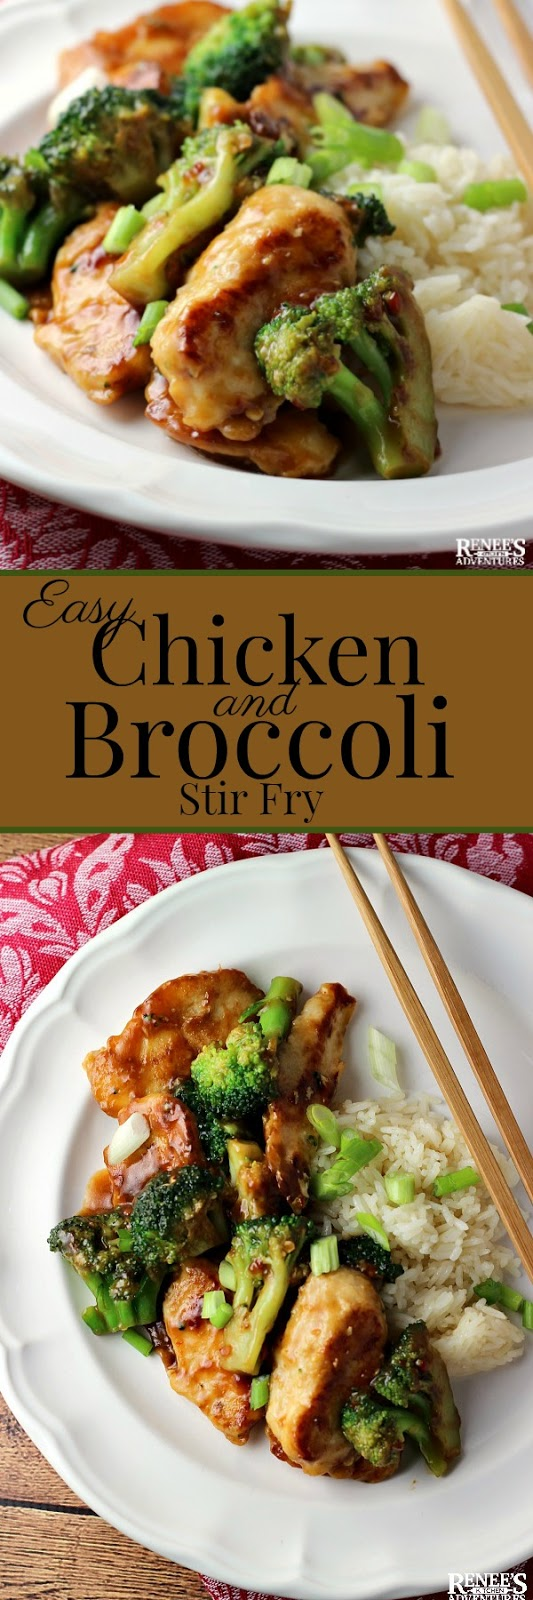 Easy Chicken Broccoli Stir Fry